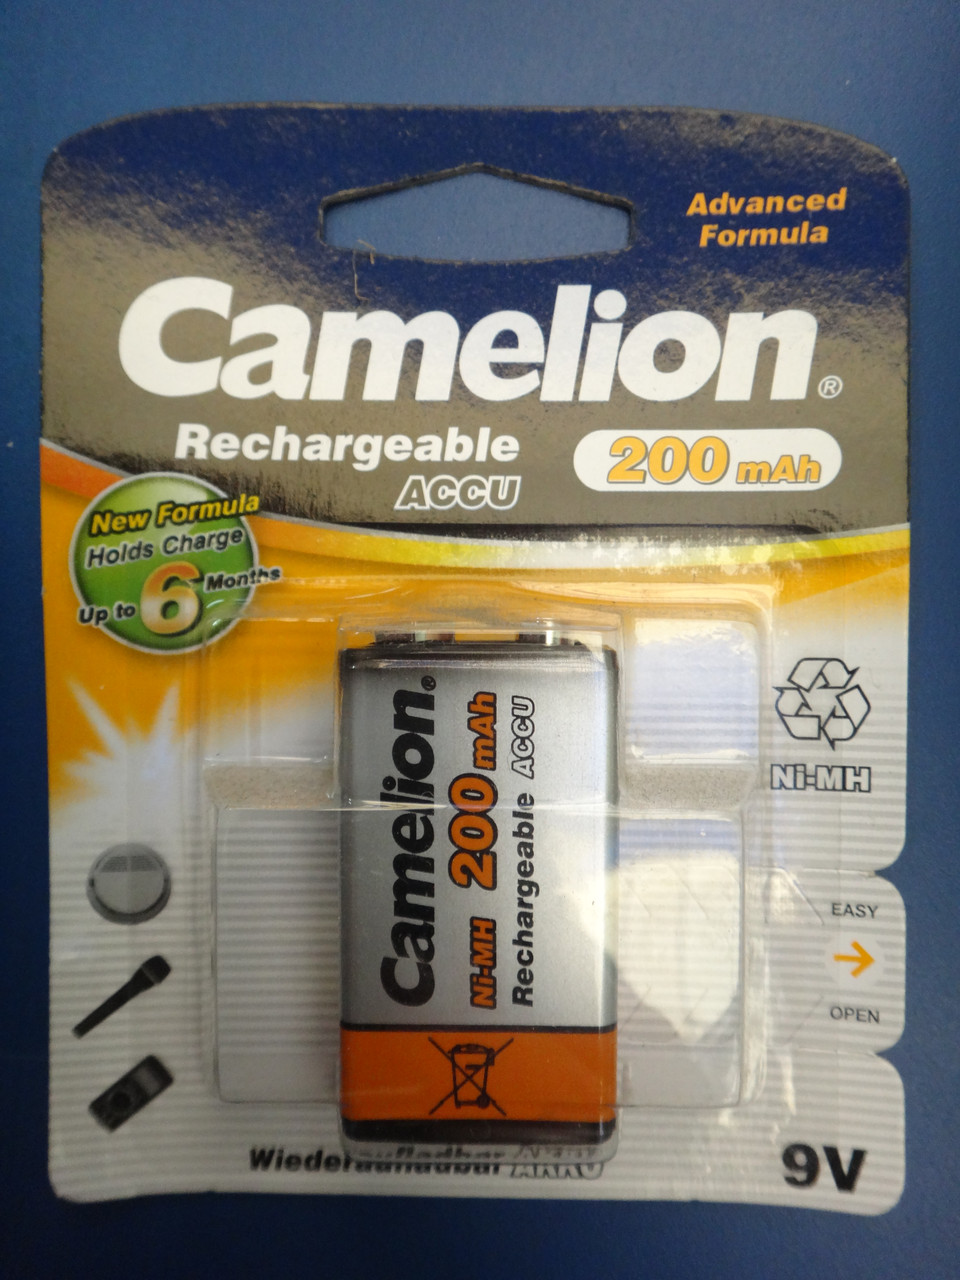 Аккумулятор Крона Camelion 9V 200mAh PP3 Ni-MH RECHARGEABLE New Formula